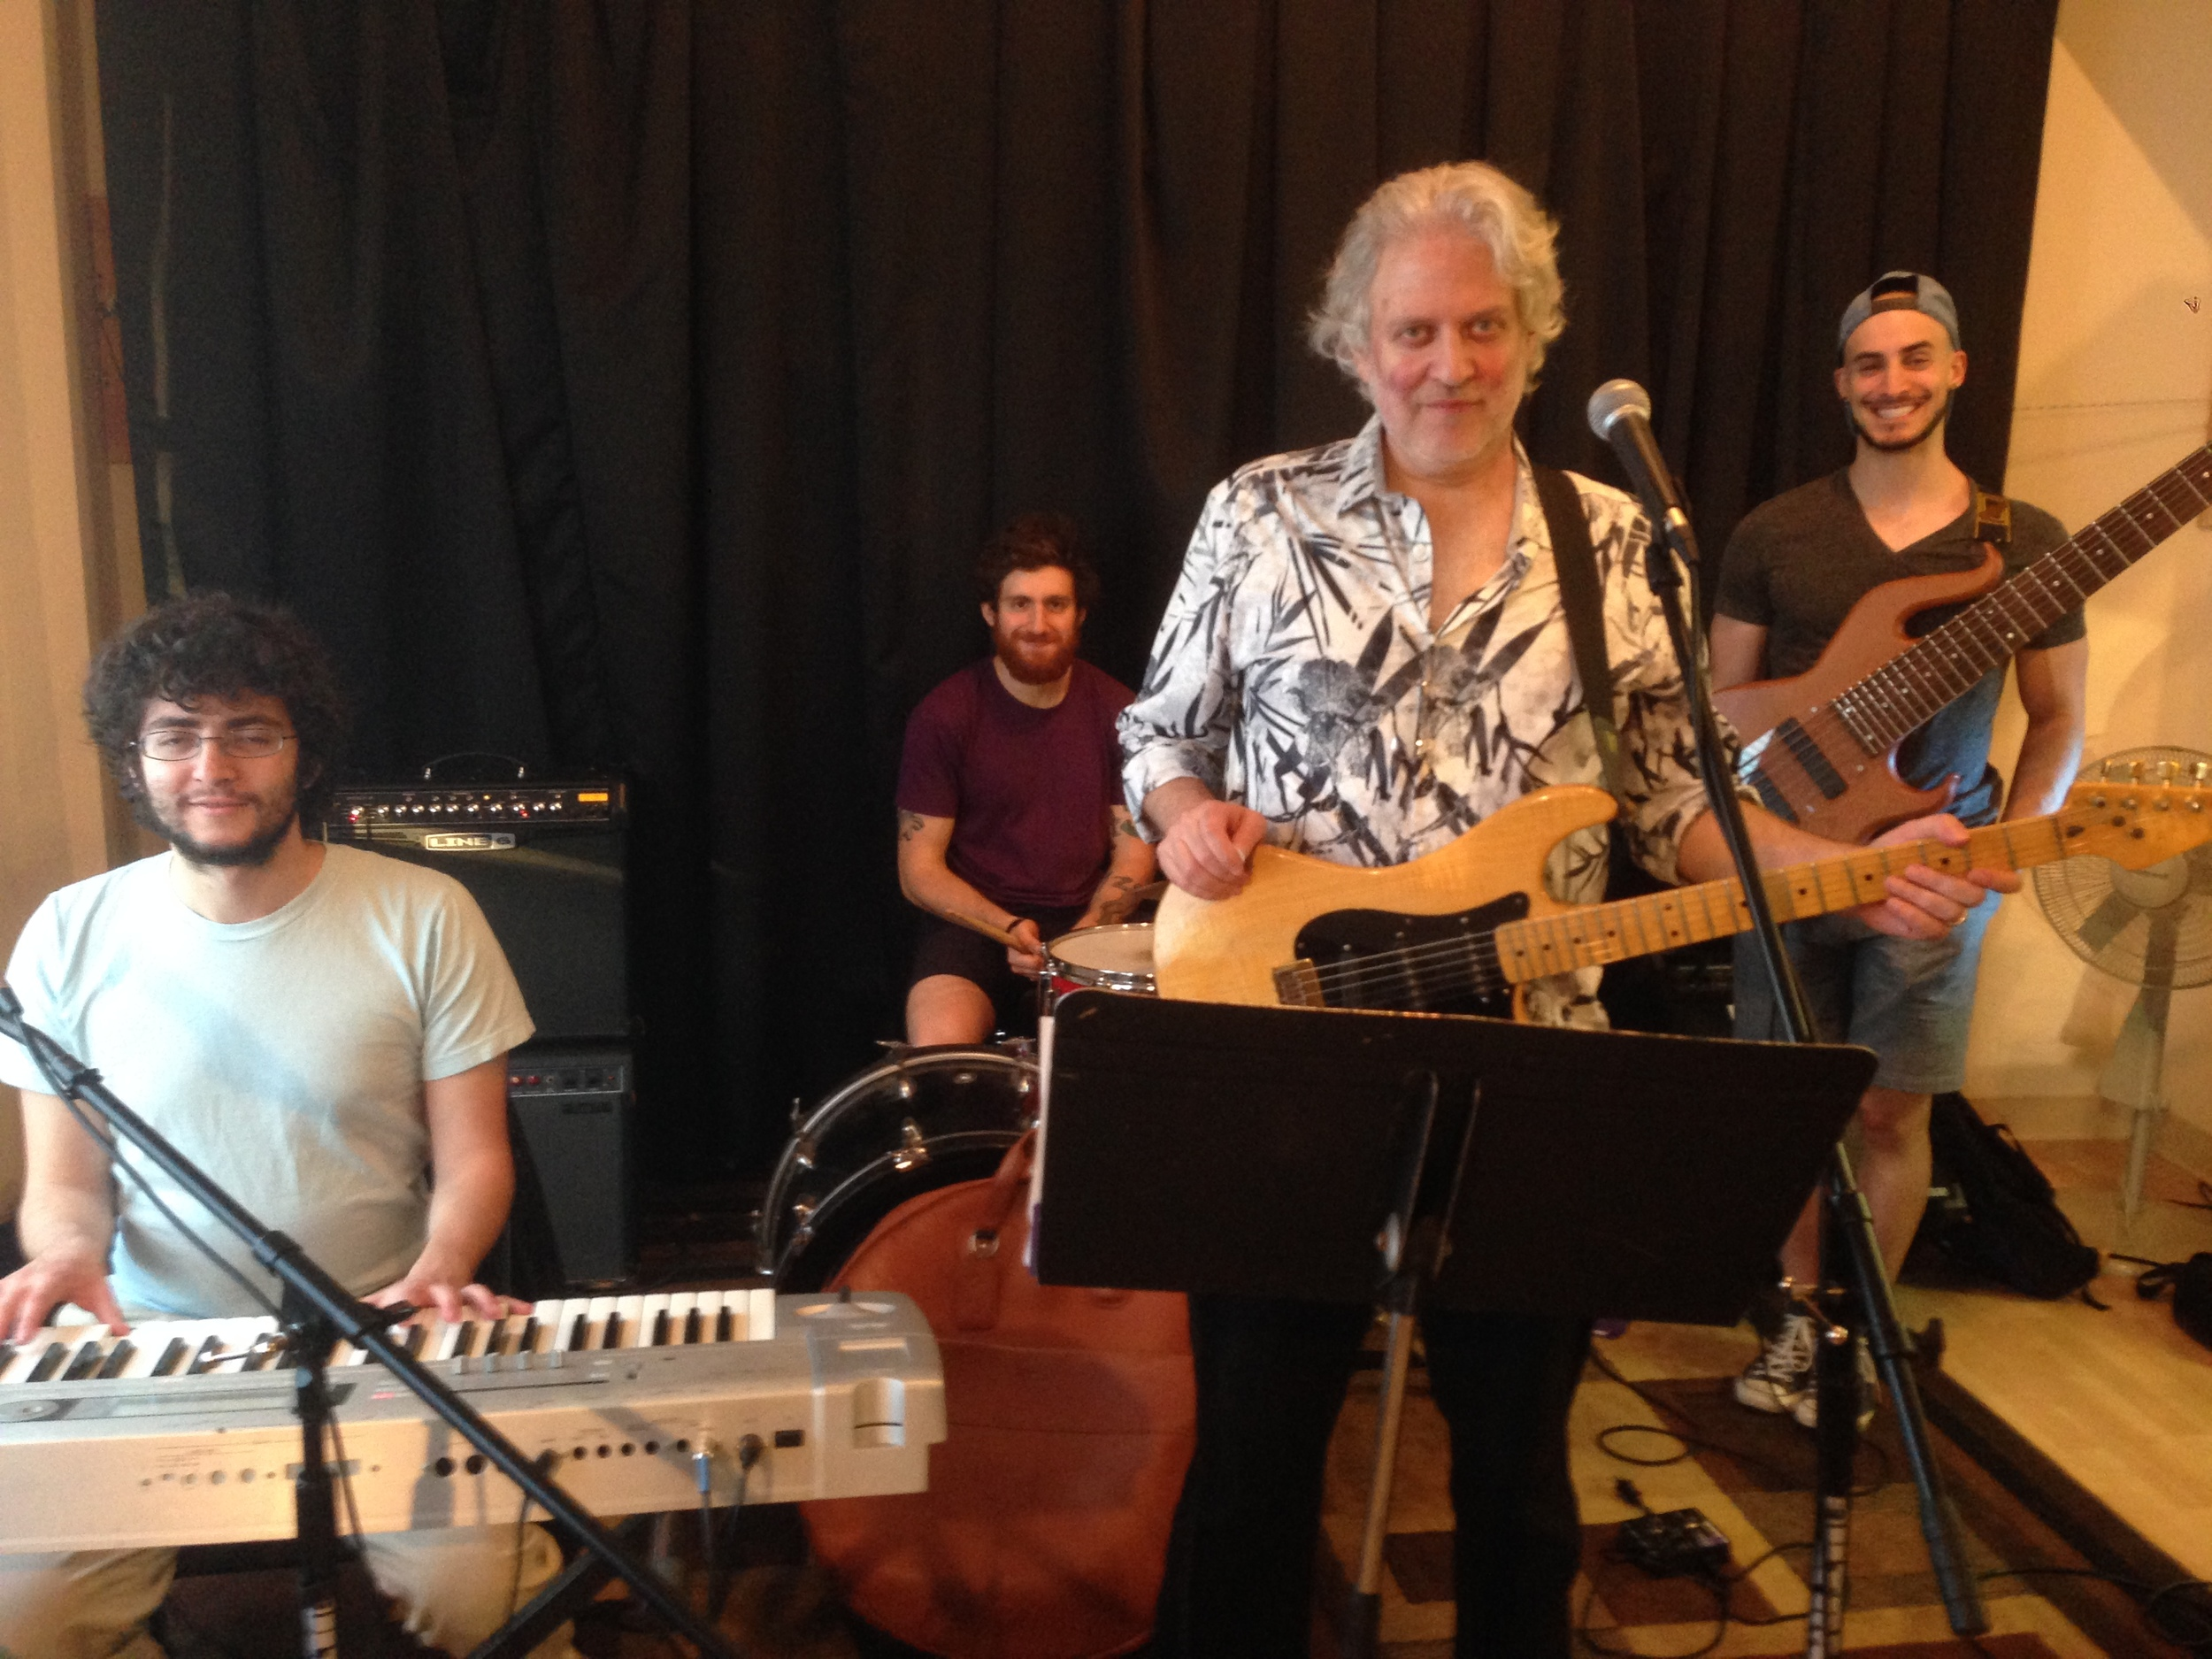 70's Pop Music Star Dean Friedman and his band